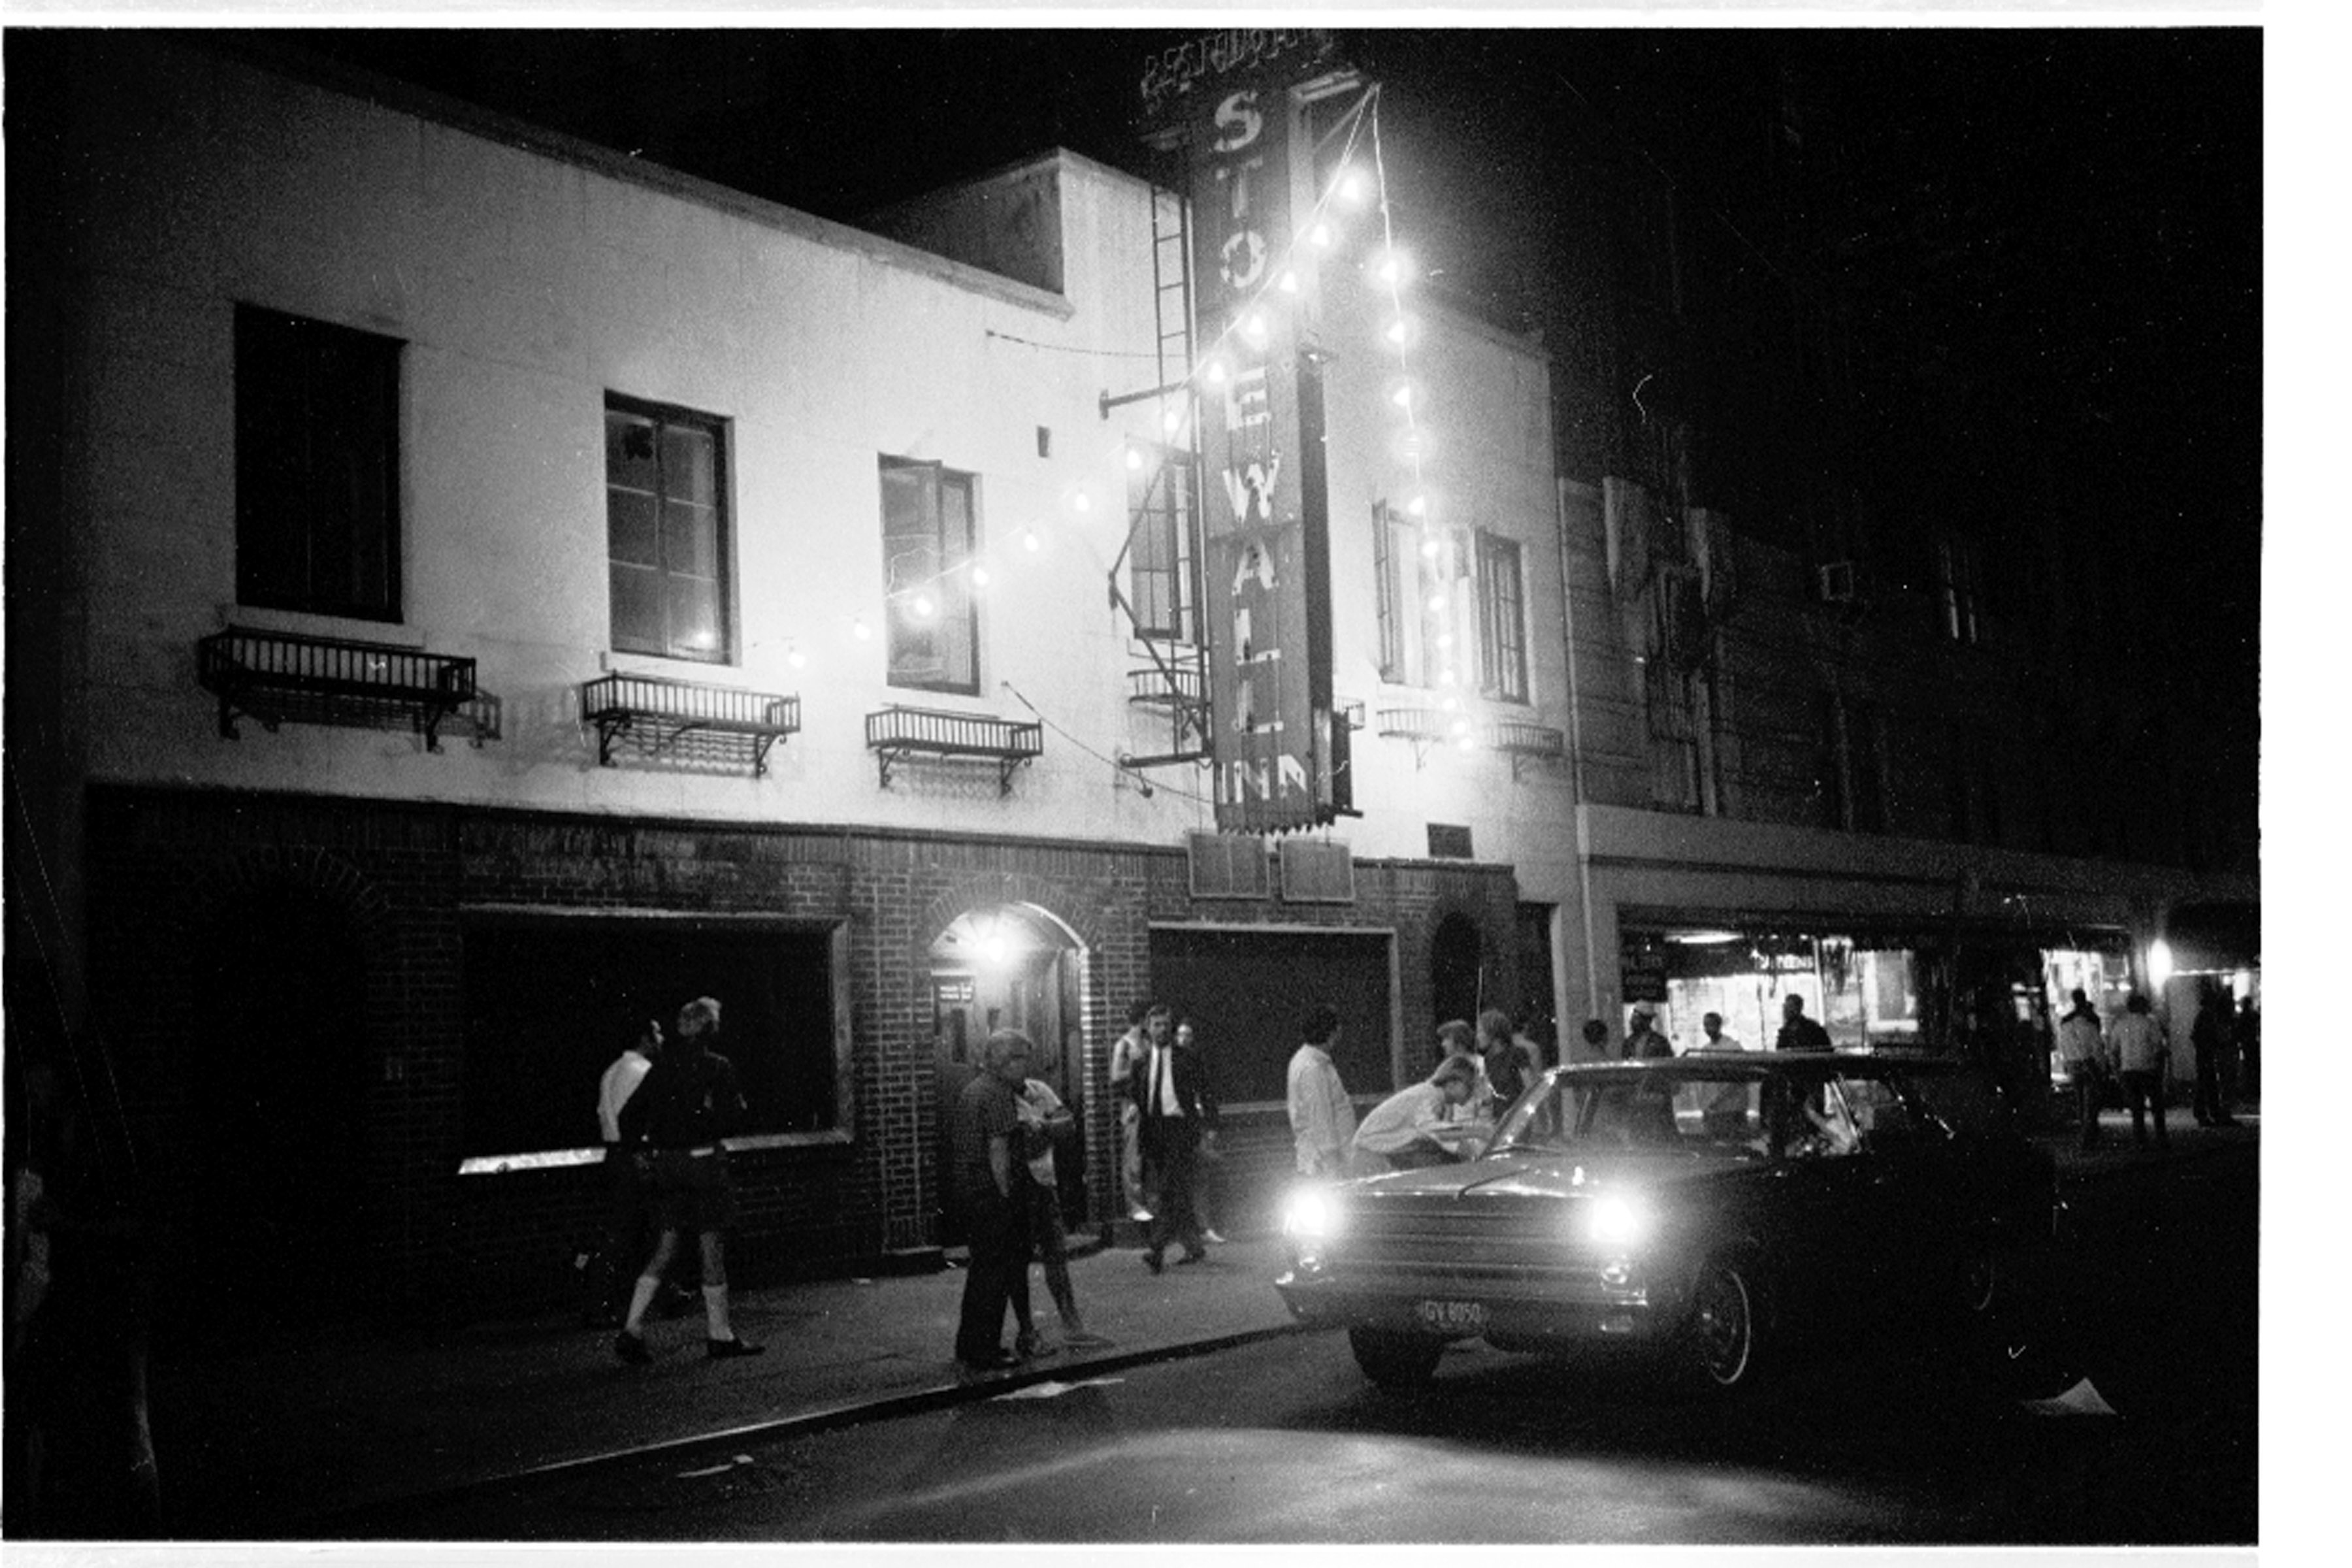 Stonewall Bar in July 1969, as seen in Kate Davis and David Heilbroner's documentary STONEWALL UPRISING.  A First Run Features Release.  Photo by Larry Morris / The New York Times.